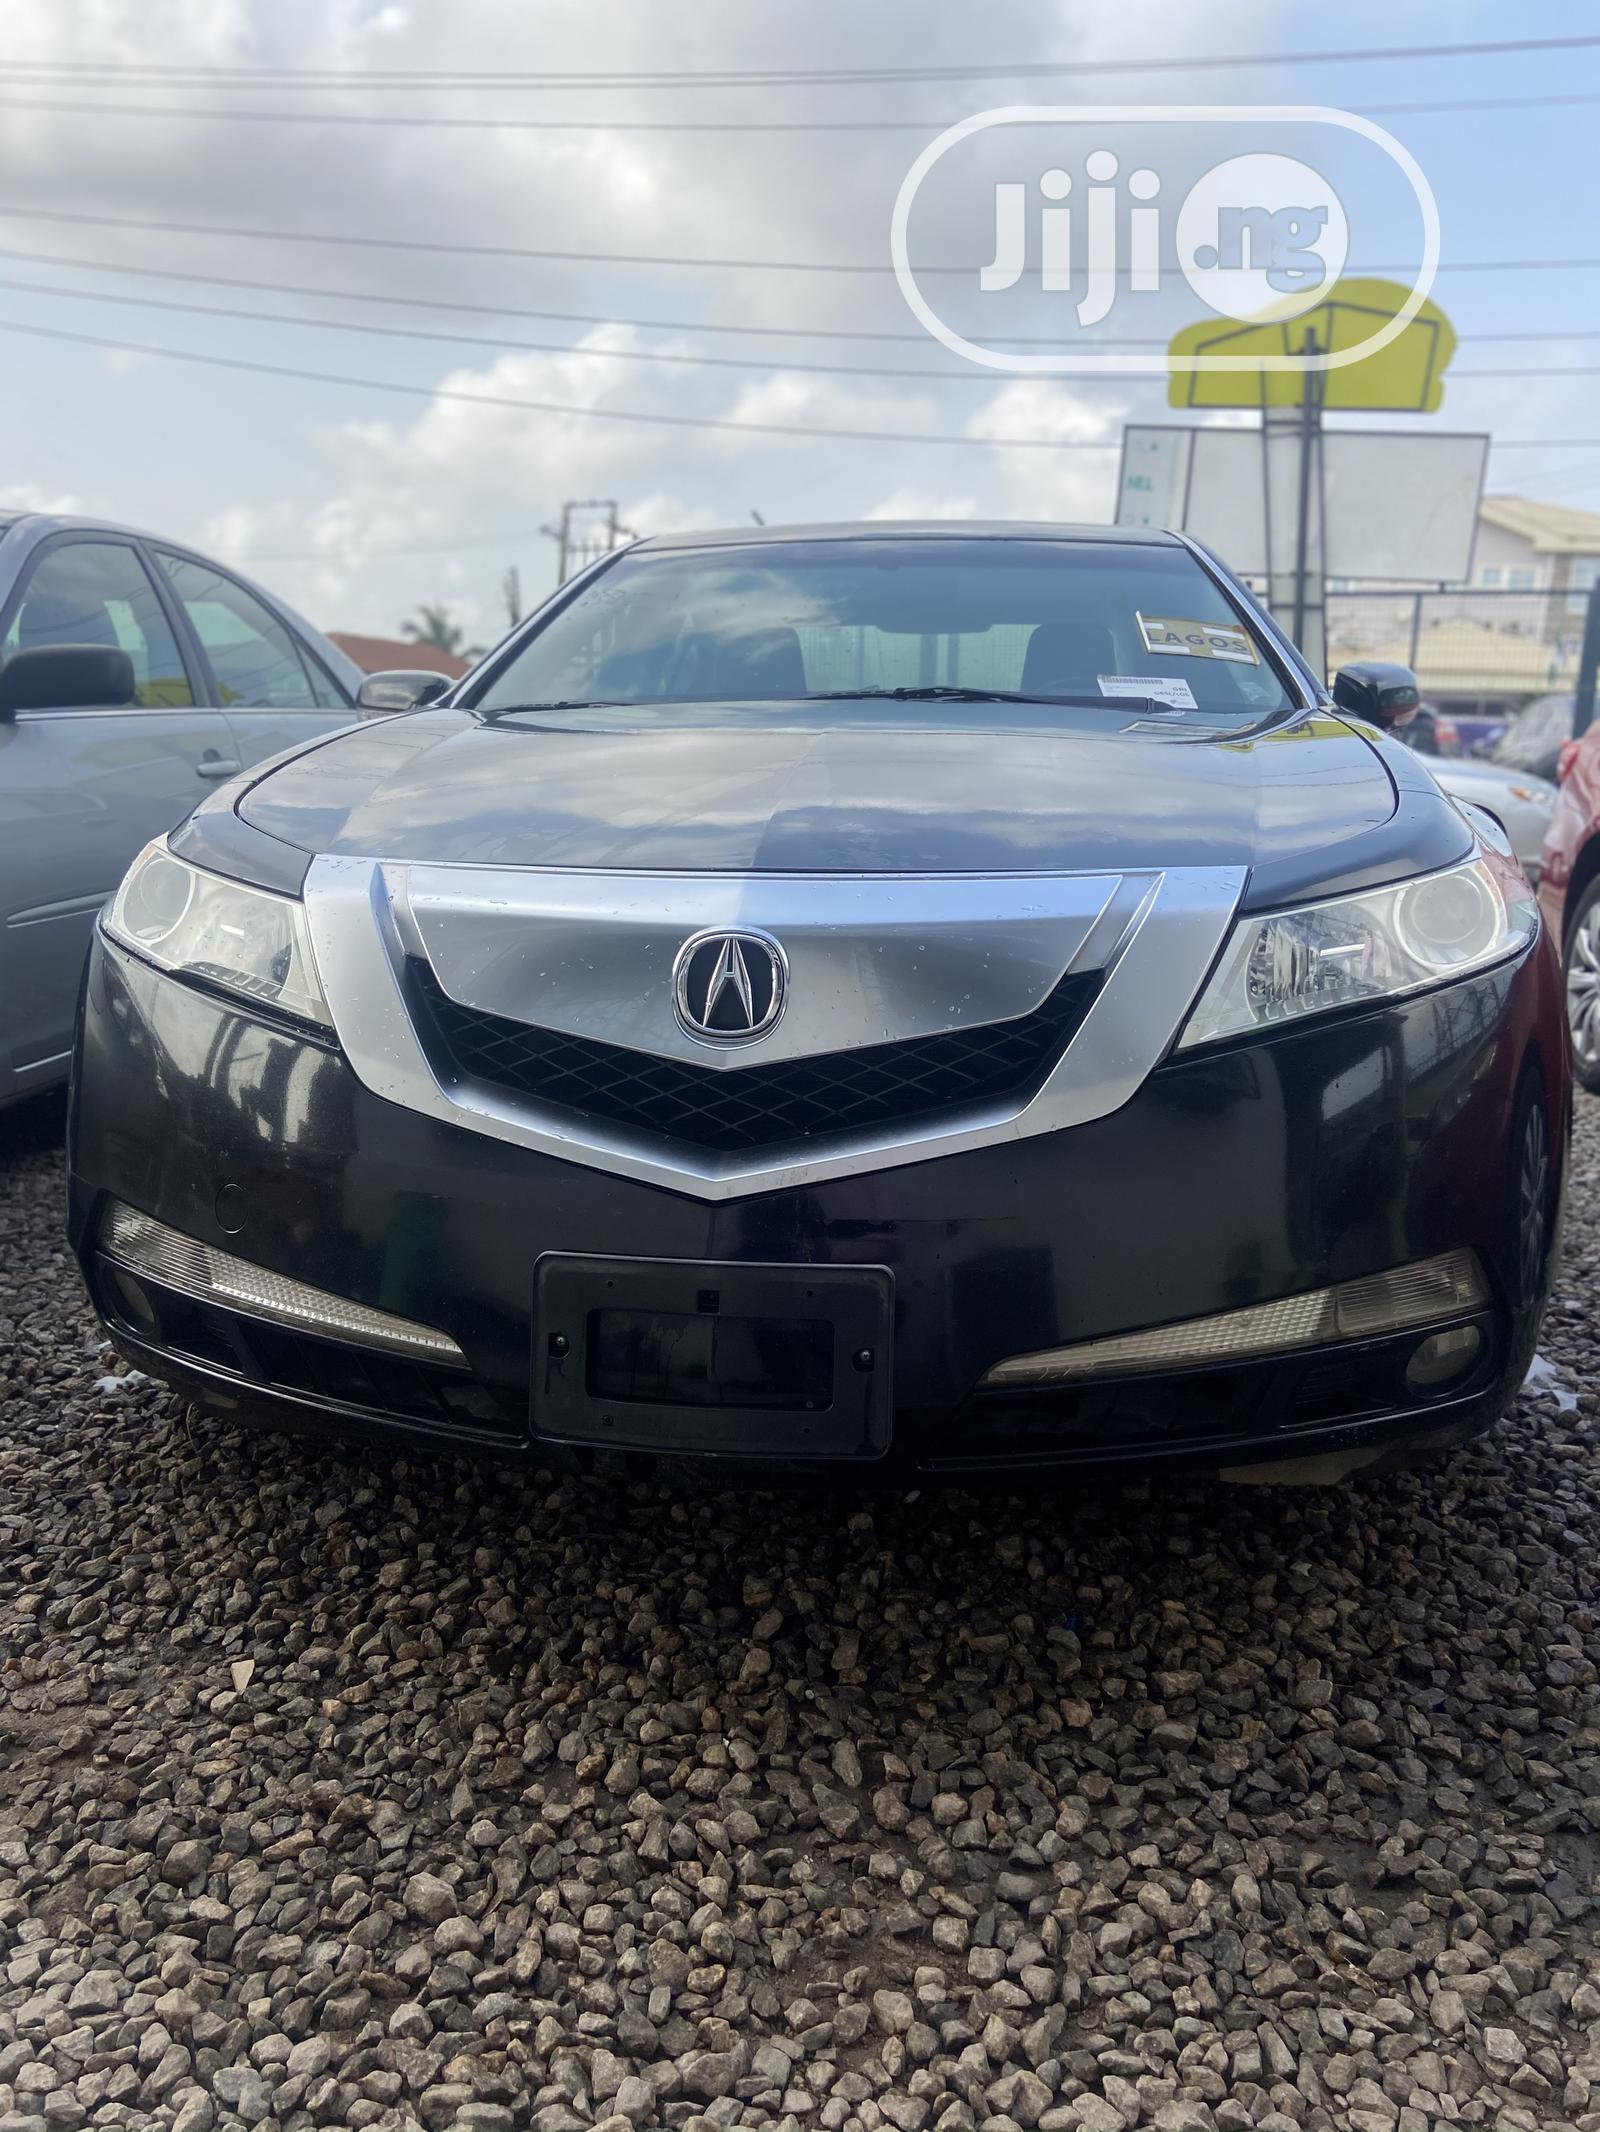 Acura Tl 2009 Black In Oluyole Cars Shashi Impex Automobile Concept Jiji Ng